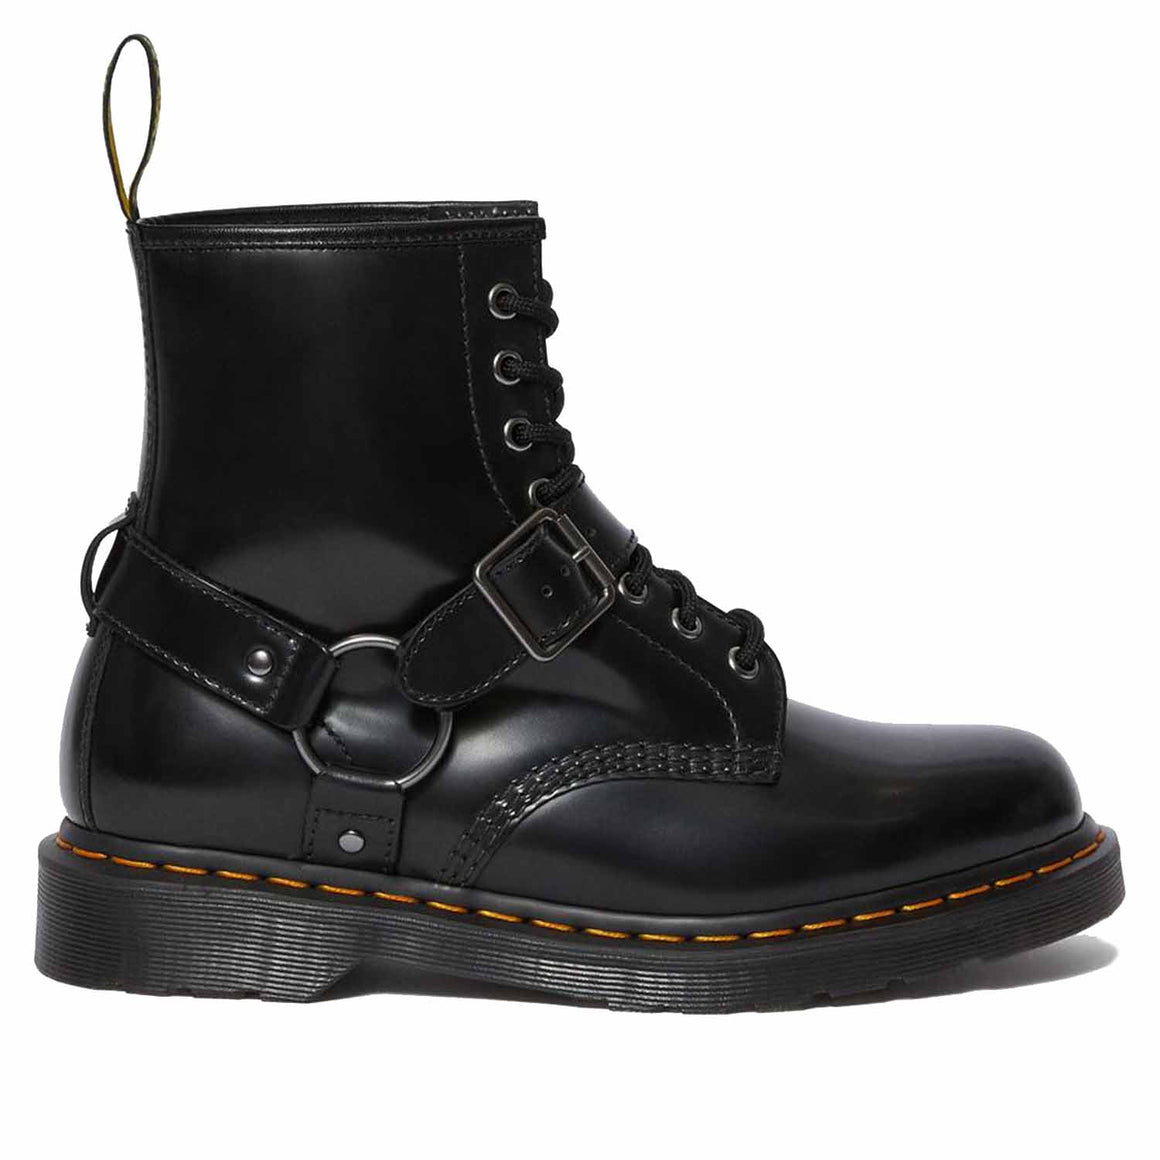 DR. MARTENS 1460 HARNESS BOOTS